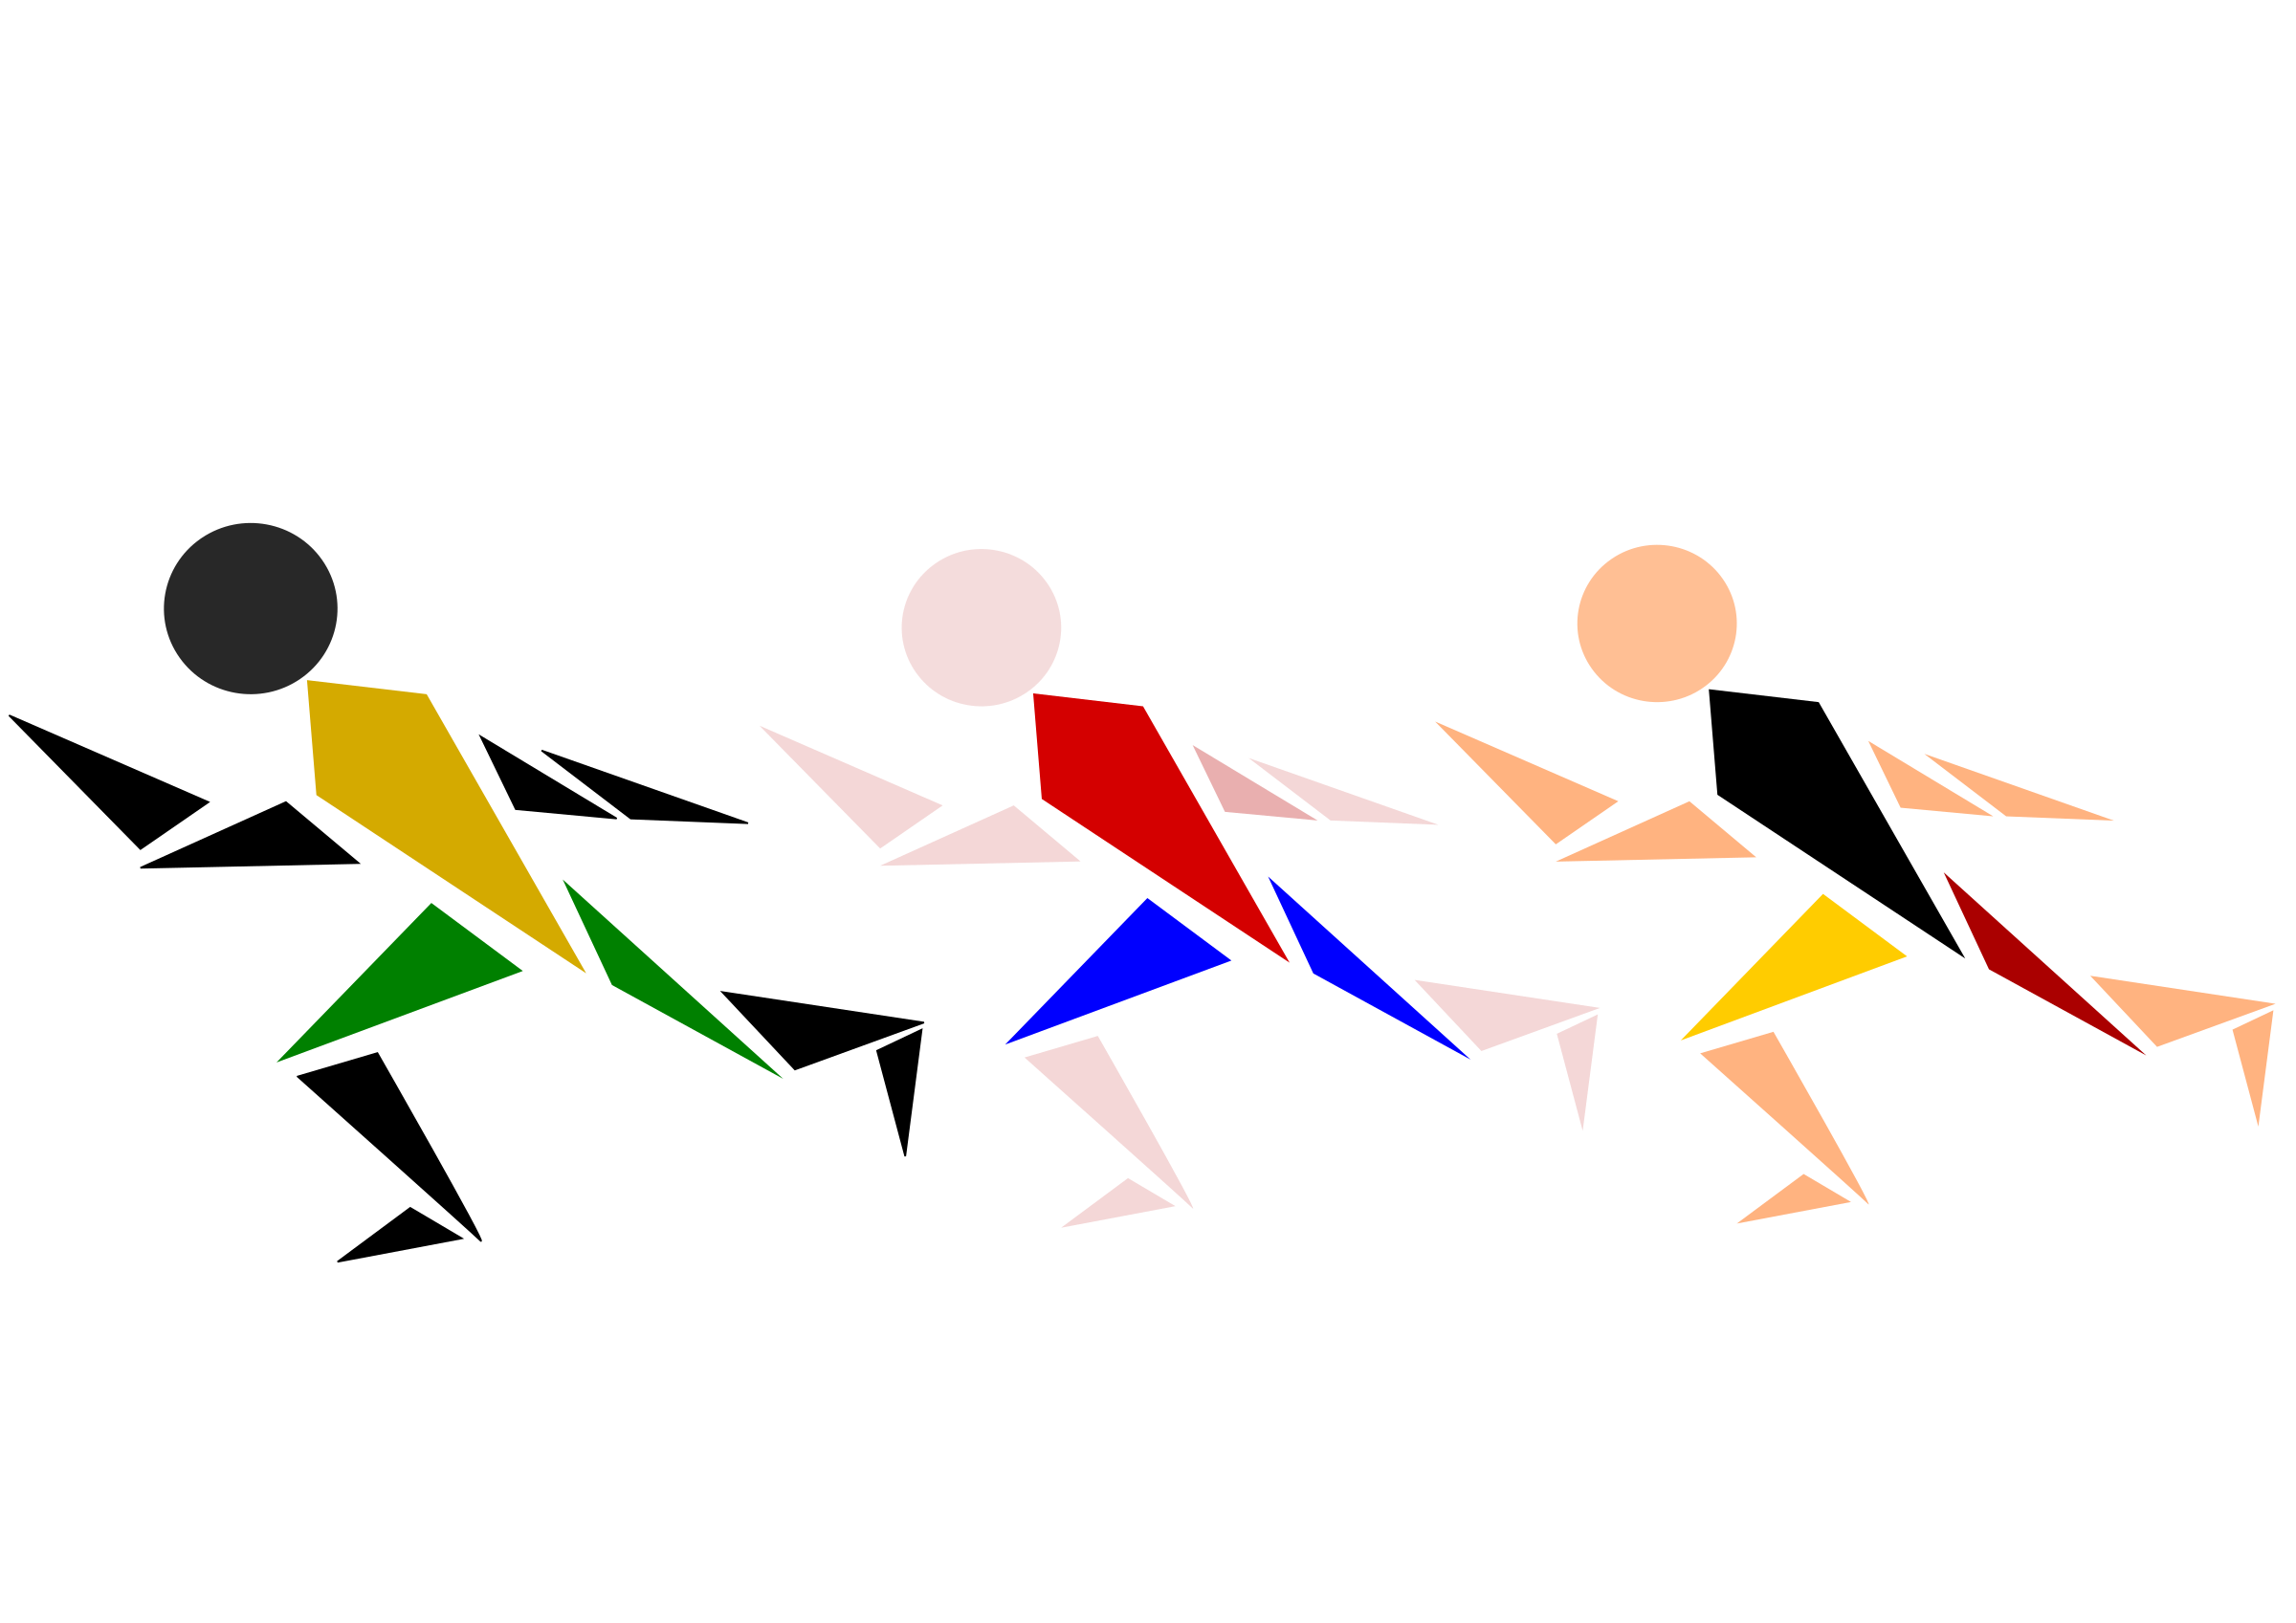 Olympic images free download. Race clipart 100m